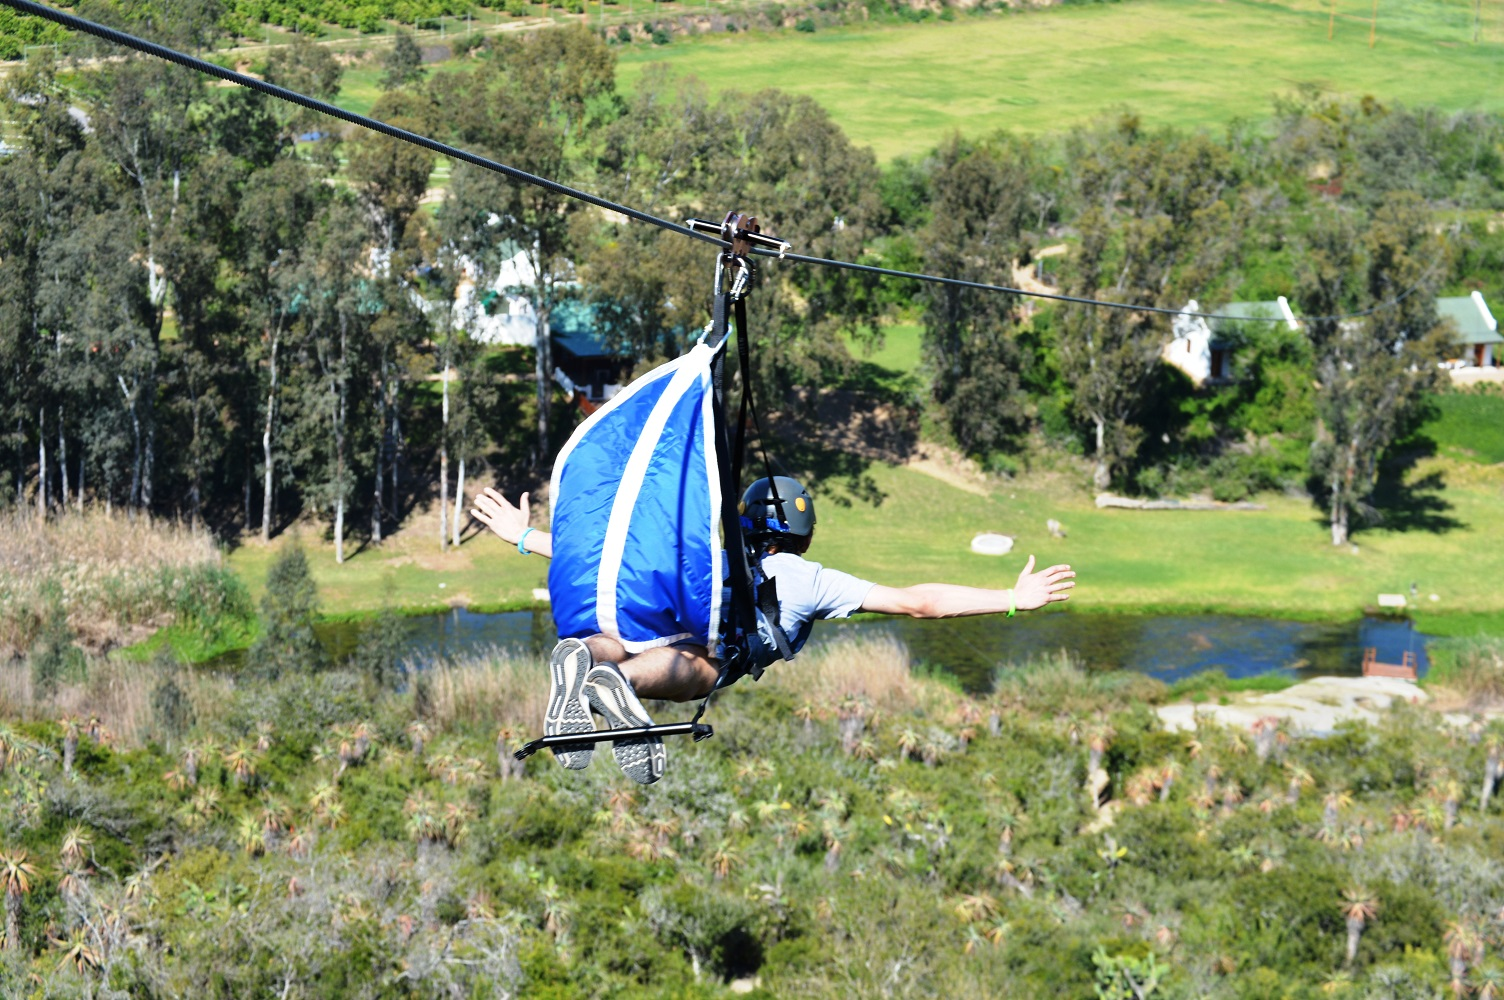 Addo superman zip line